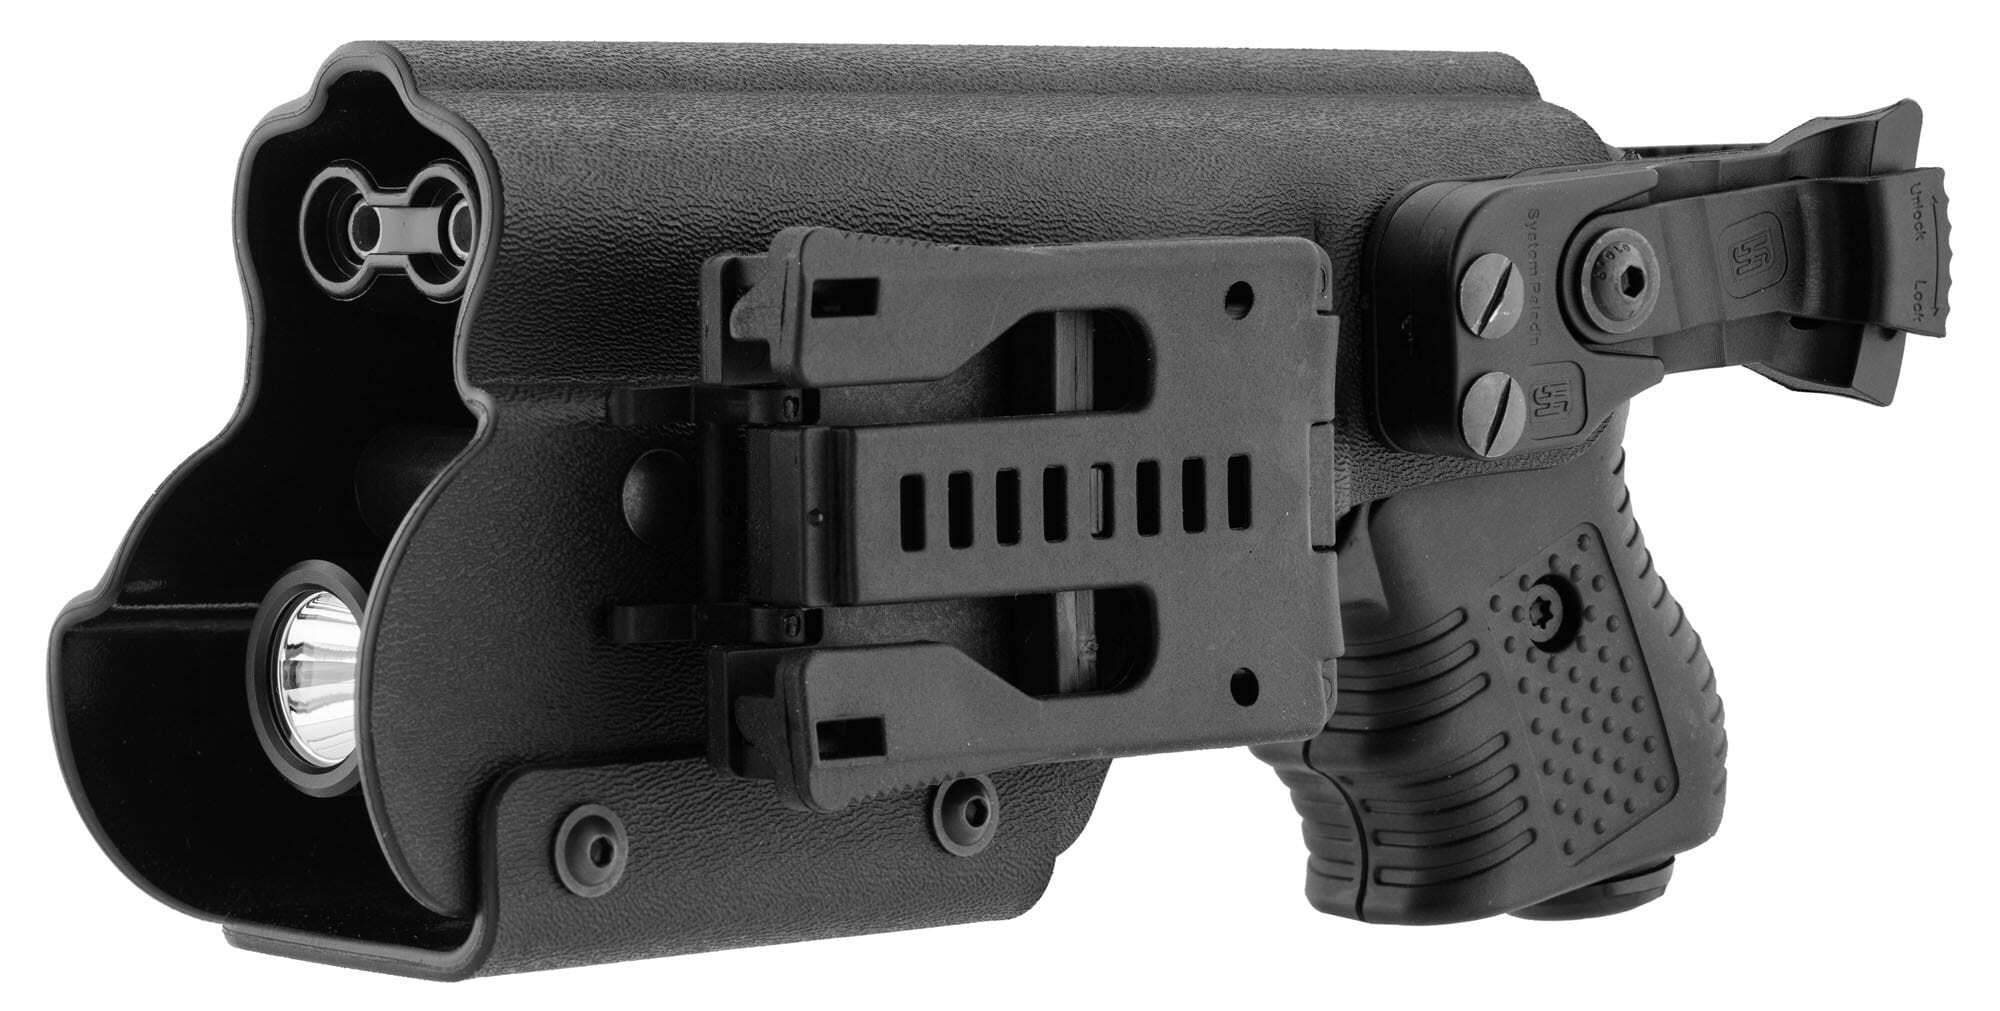 JPX390-6-Holster pour JPX - Kydex Paladin II avec lampe tactique - JPX390